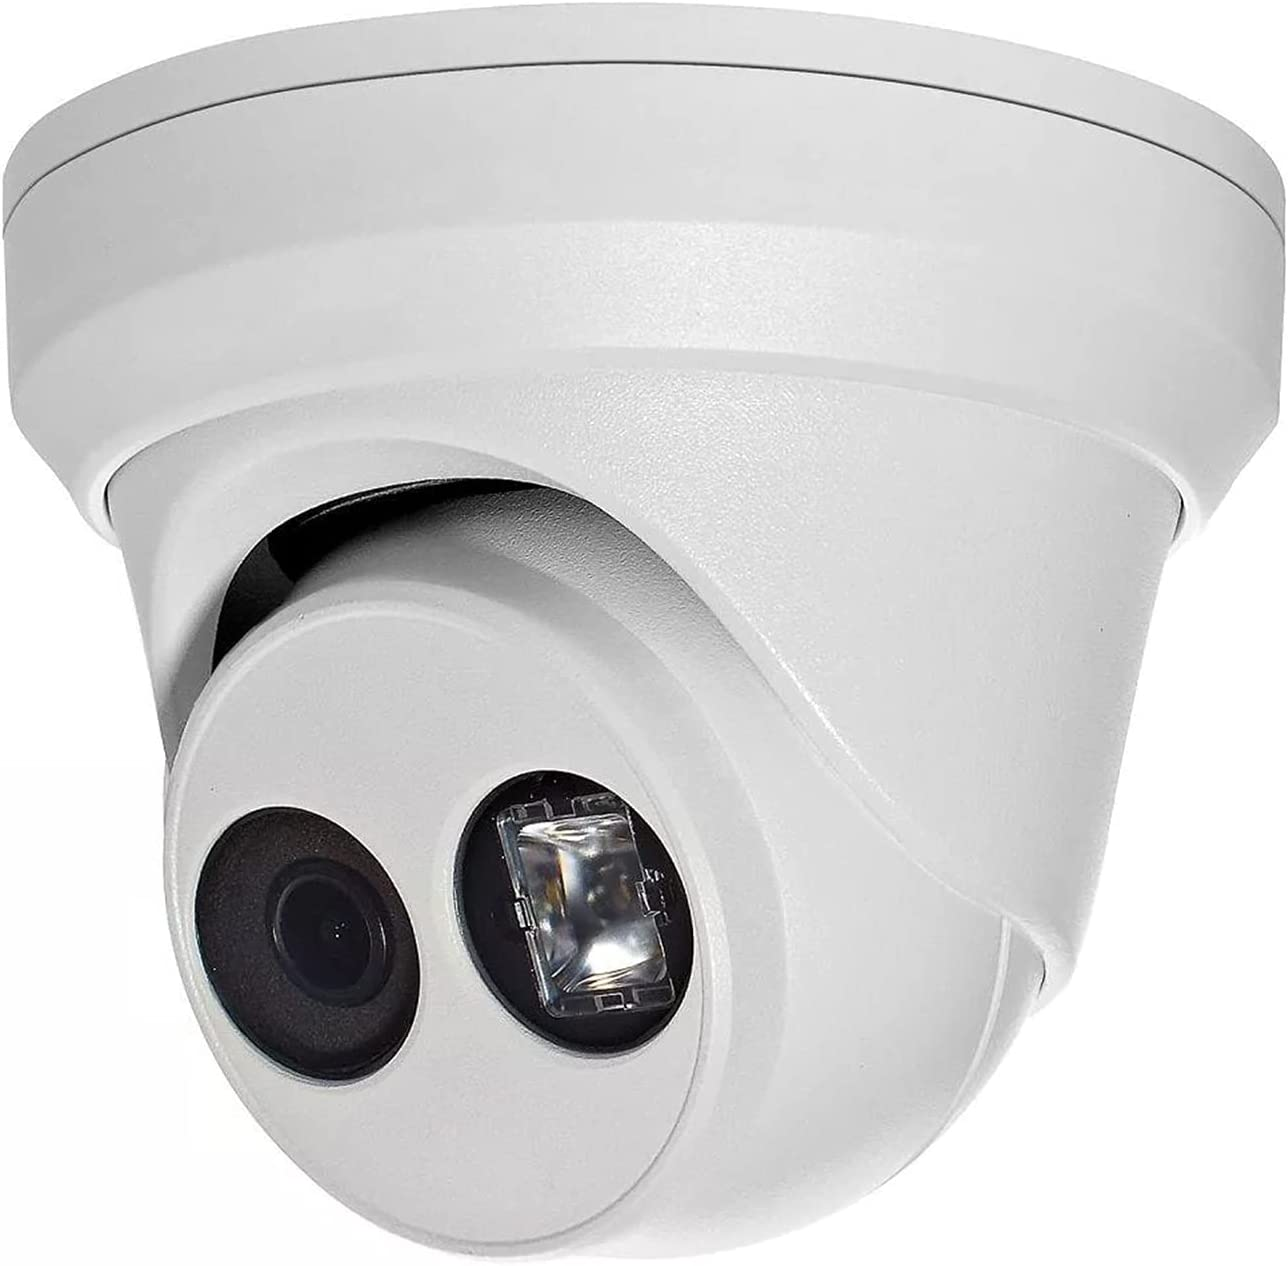 4MP Outdoor PoE 倉 Turret 大人気! IP Camera Lens 98ft EXIR with Nigh 2.8mm